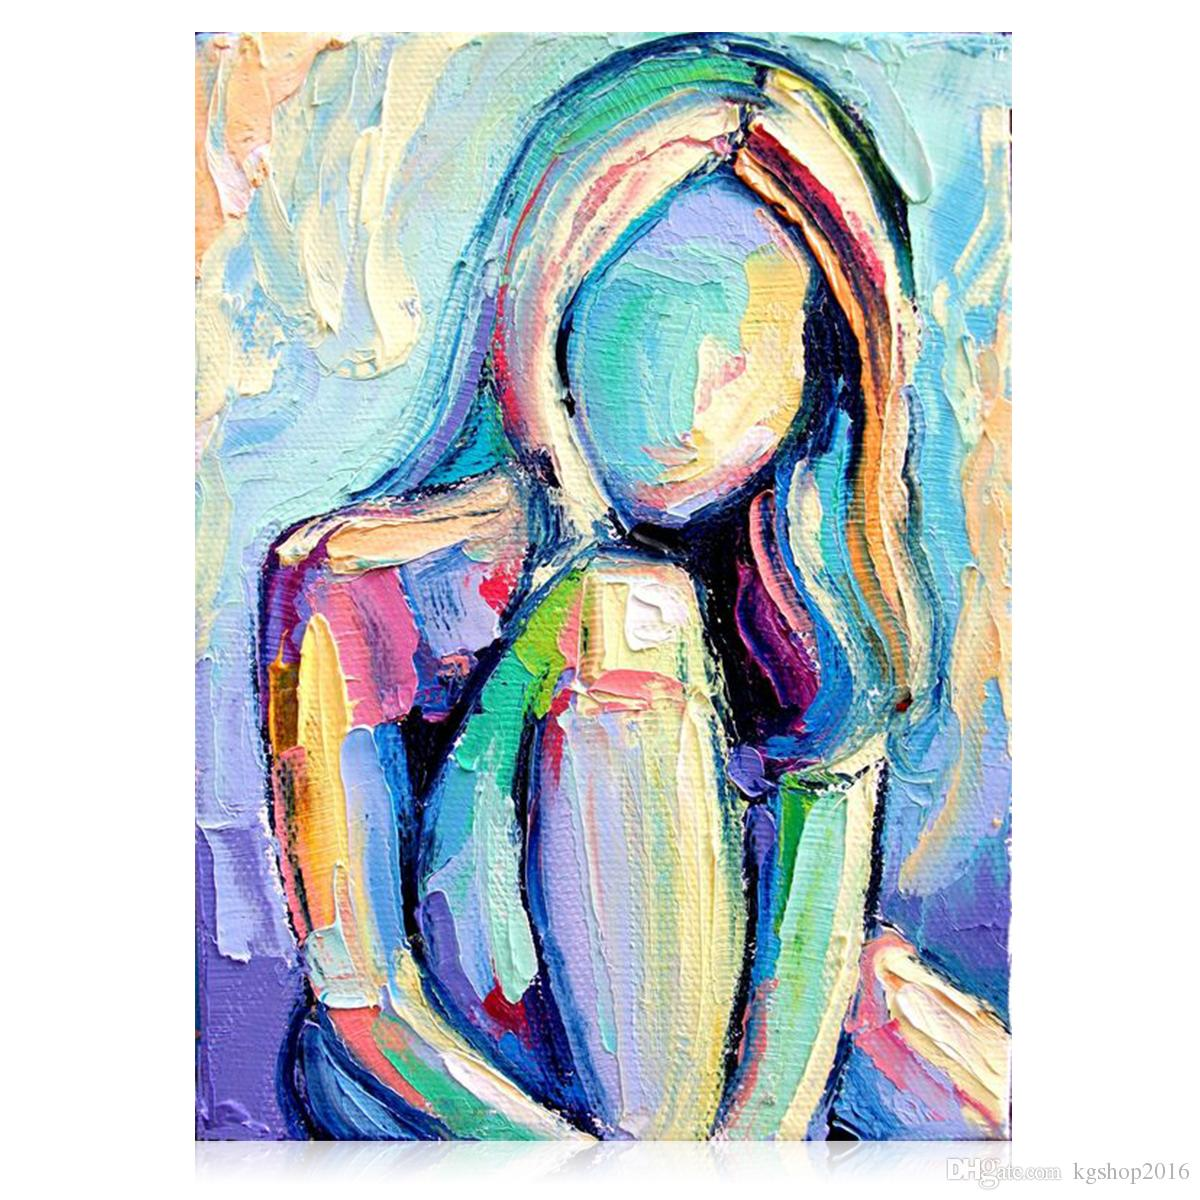 2018 kgtech contemporary artist paintings textured girl for Contemporary mural artists